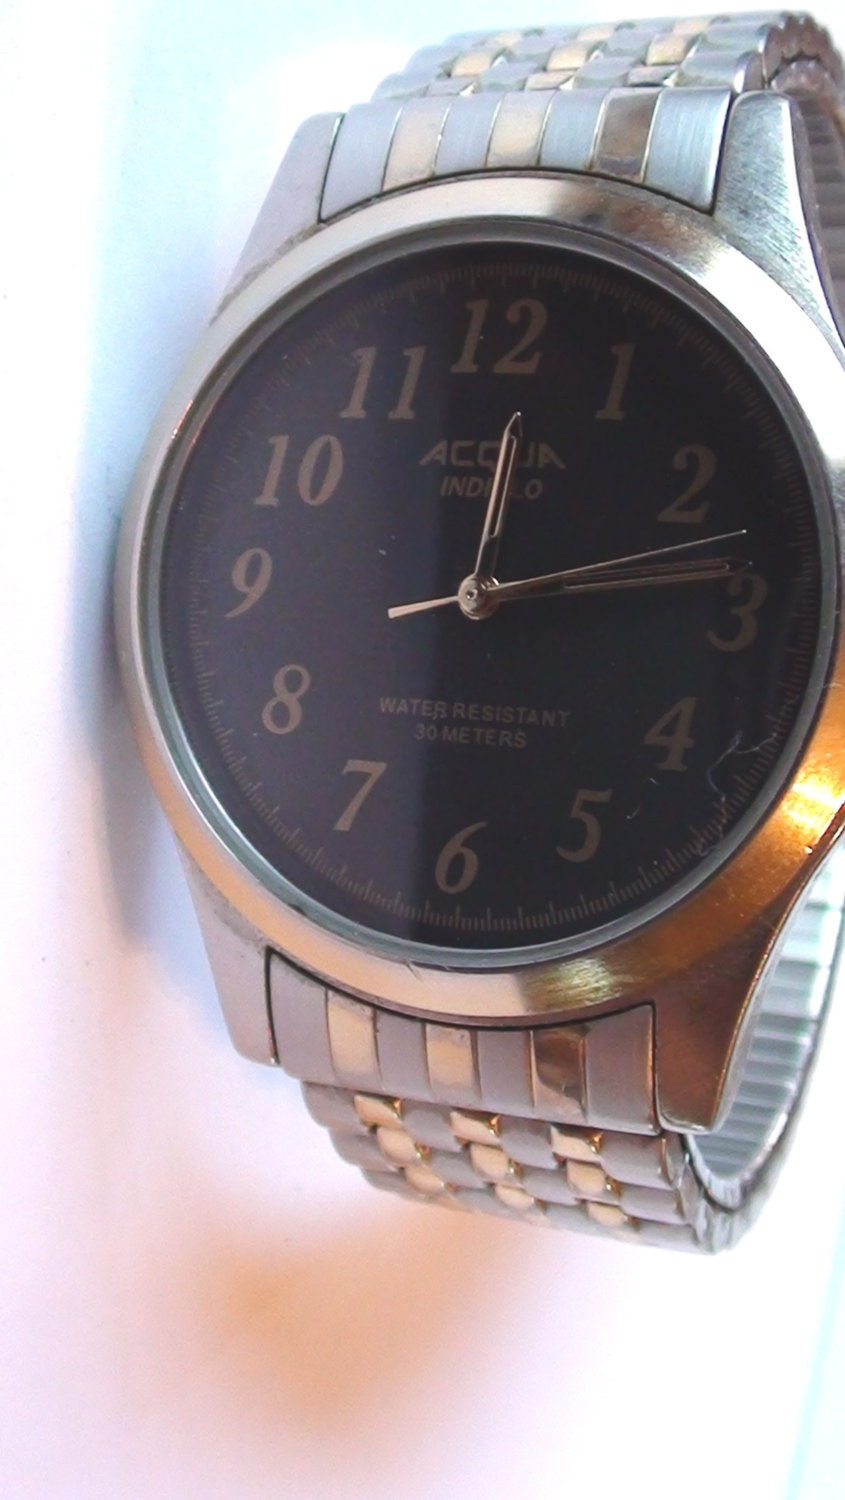 Men watch acqua timex indiglo face 1 1 2 diam vintage for Indiglo watches